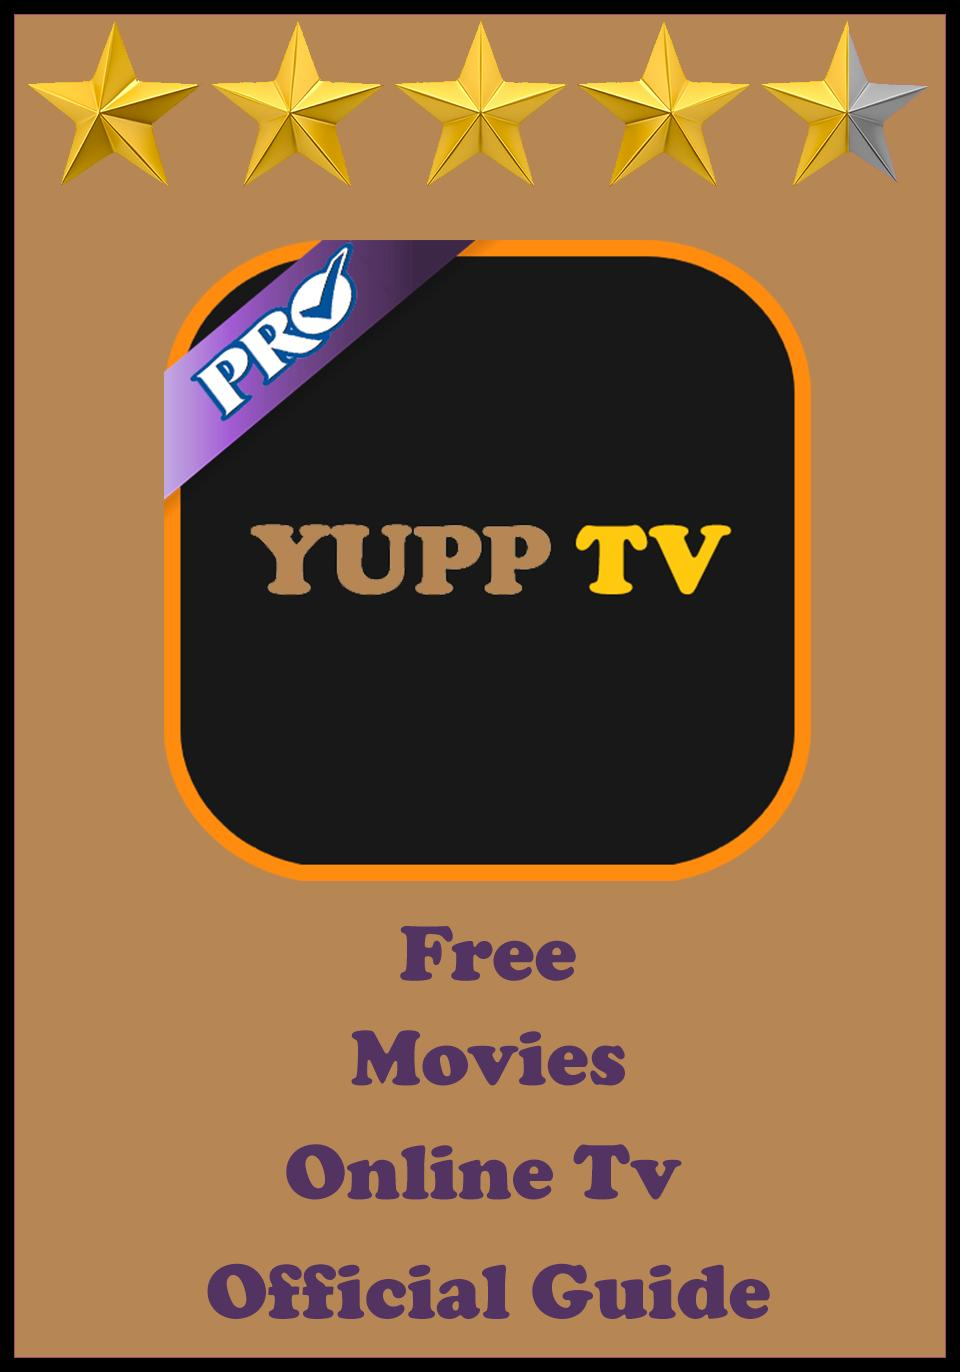 Yupptv Mod Apk For Android Tv {Nhs Alumni}